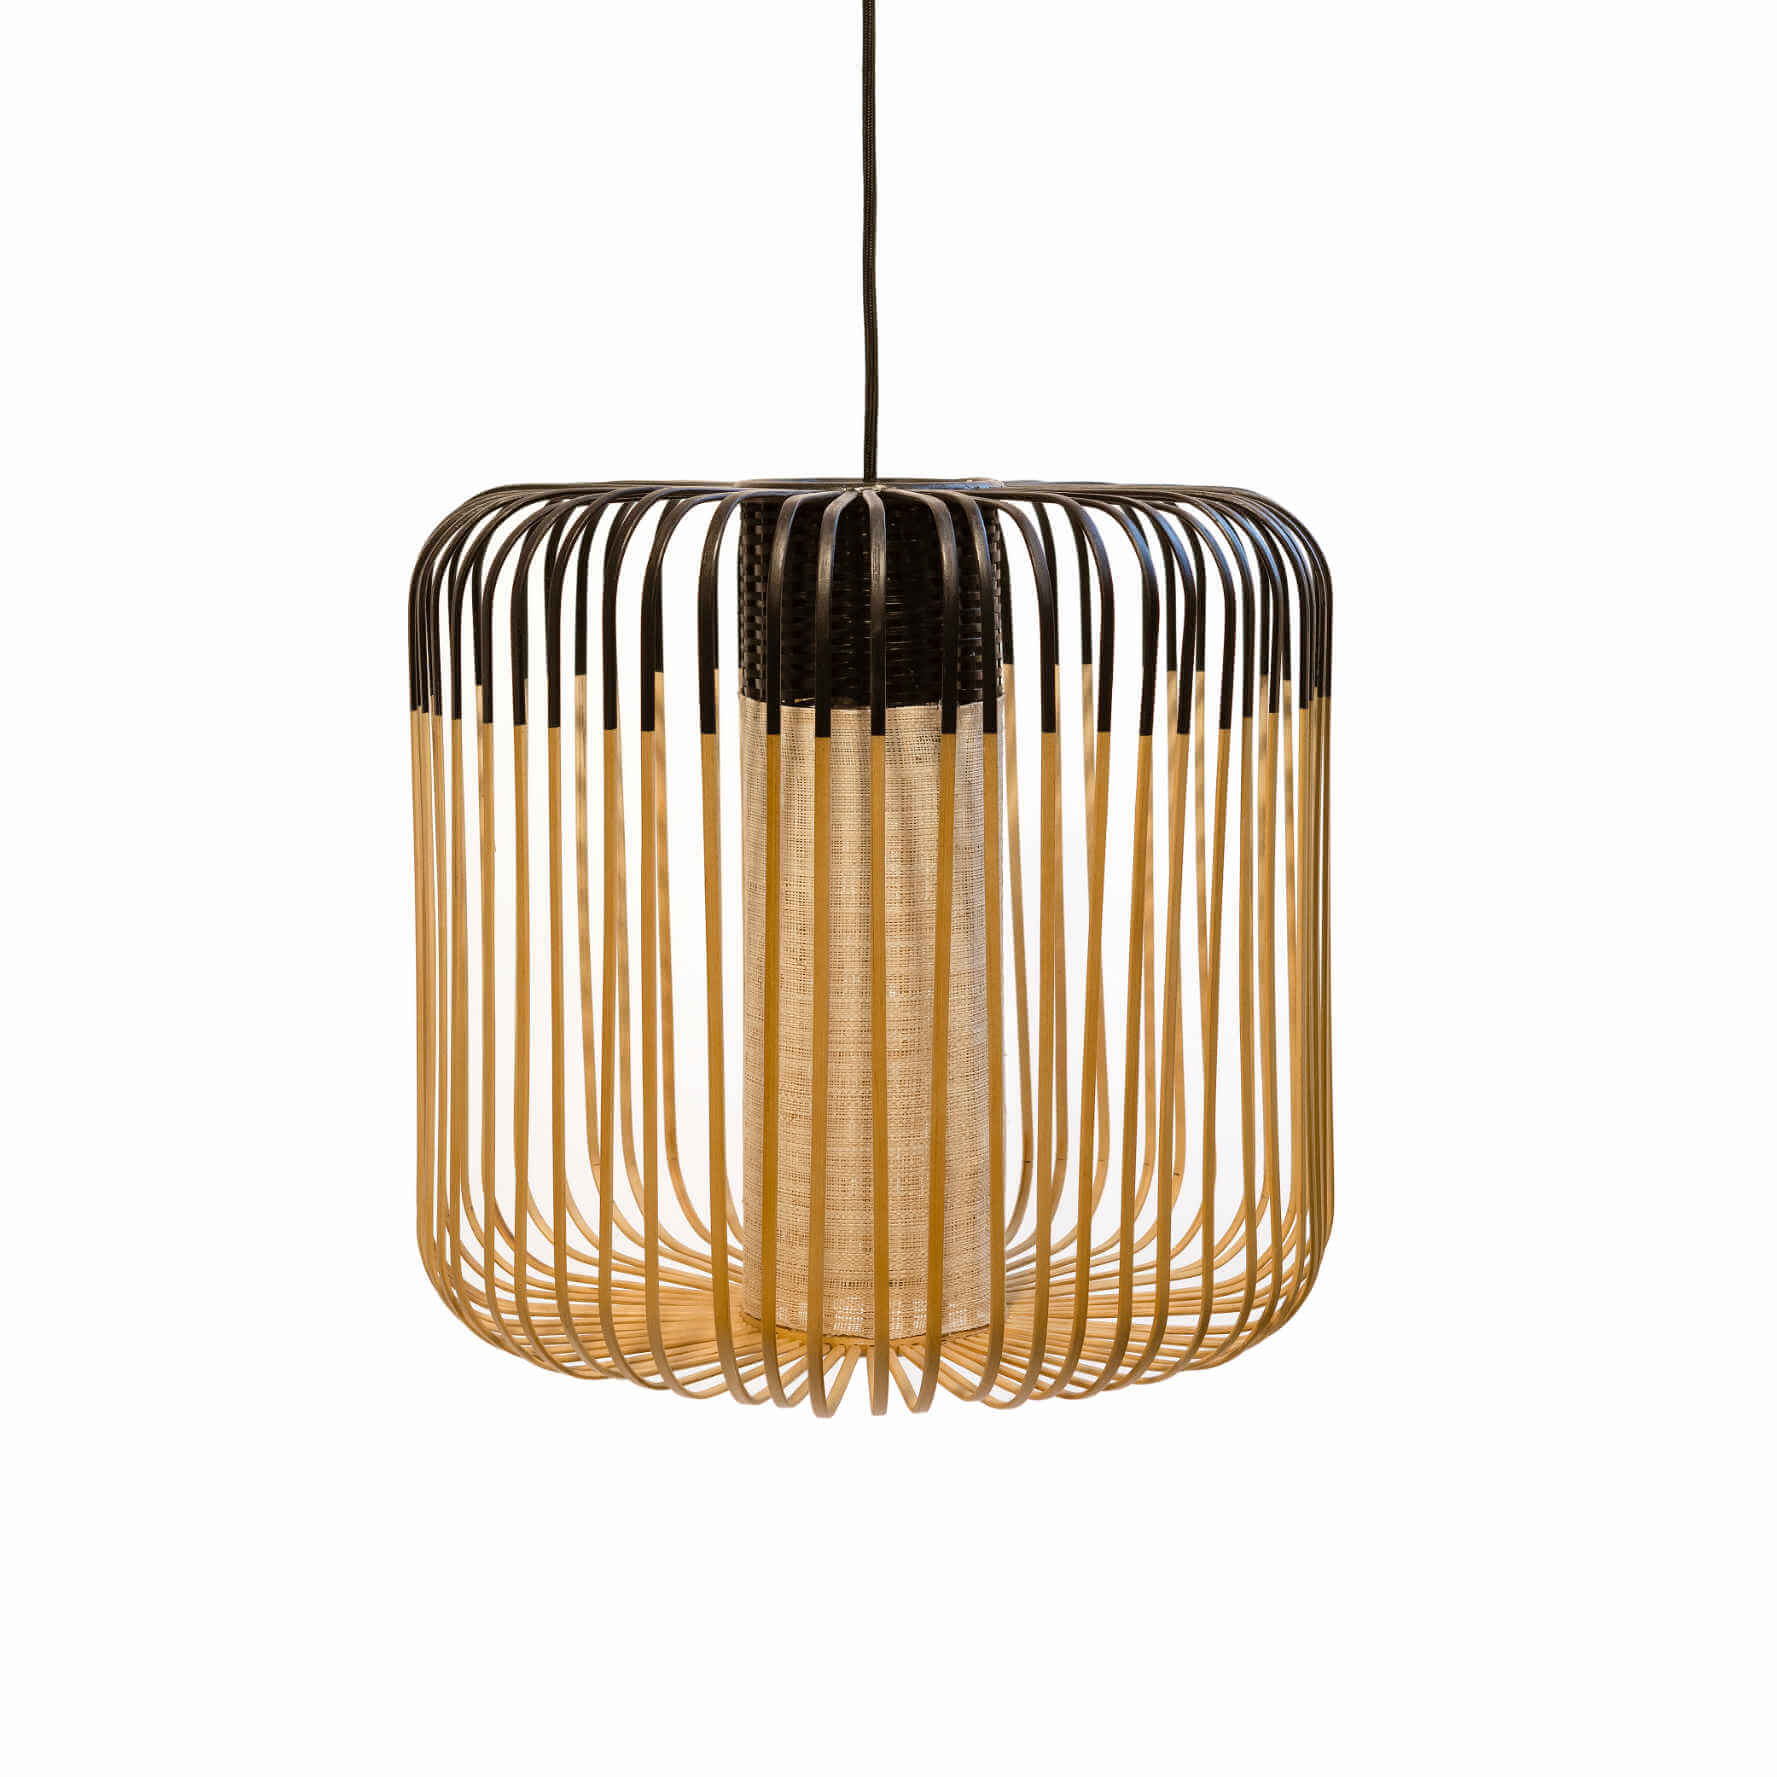 Suspension Bamboo noire M - Le Forestier